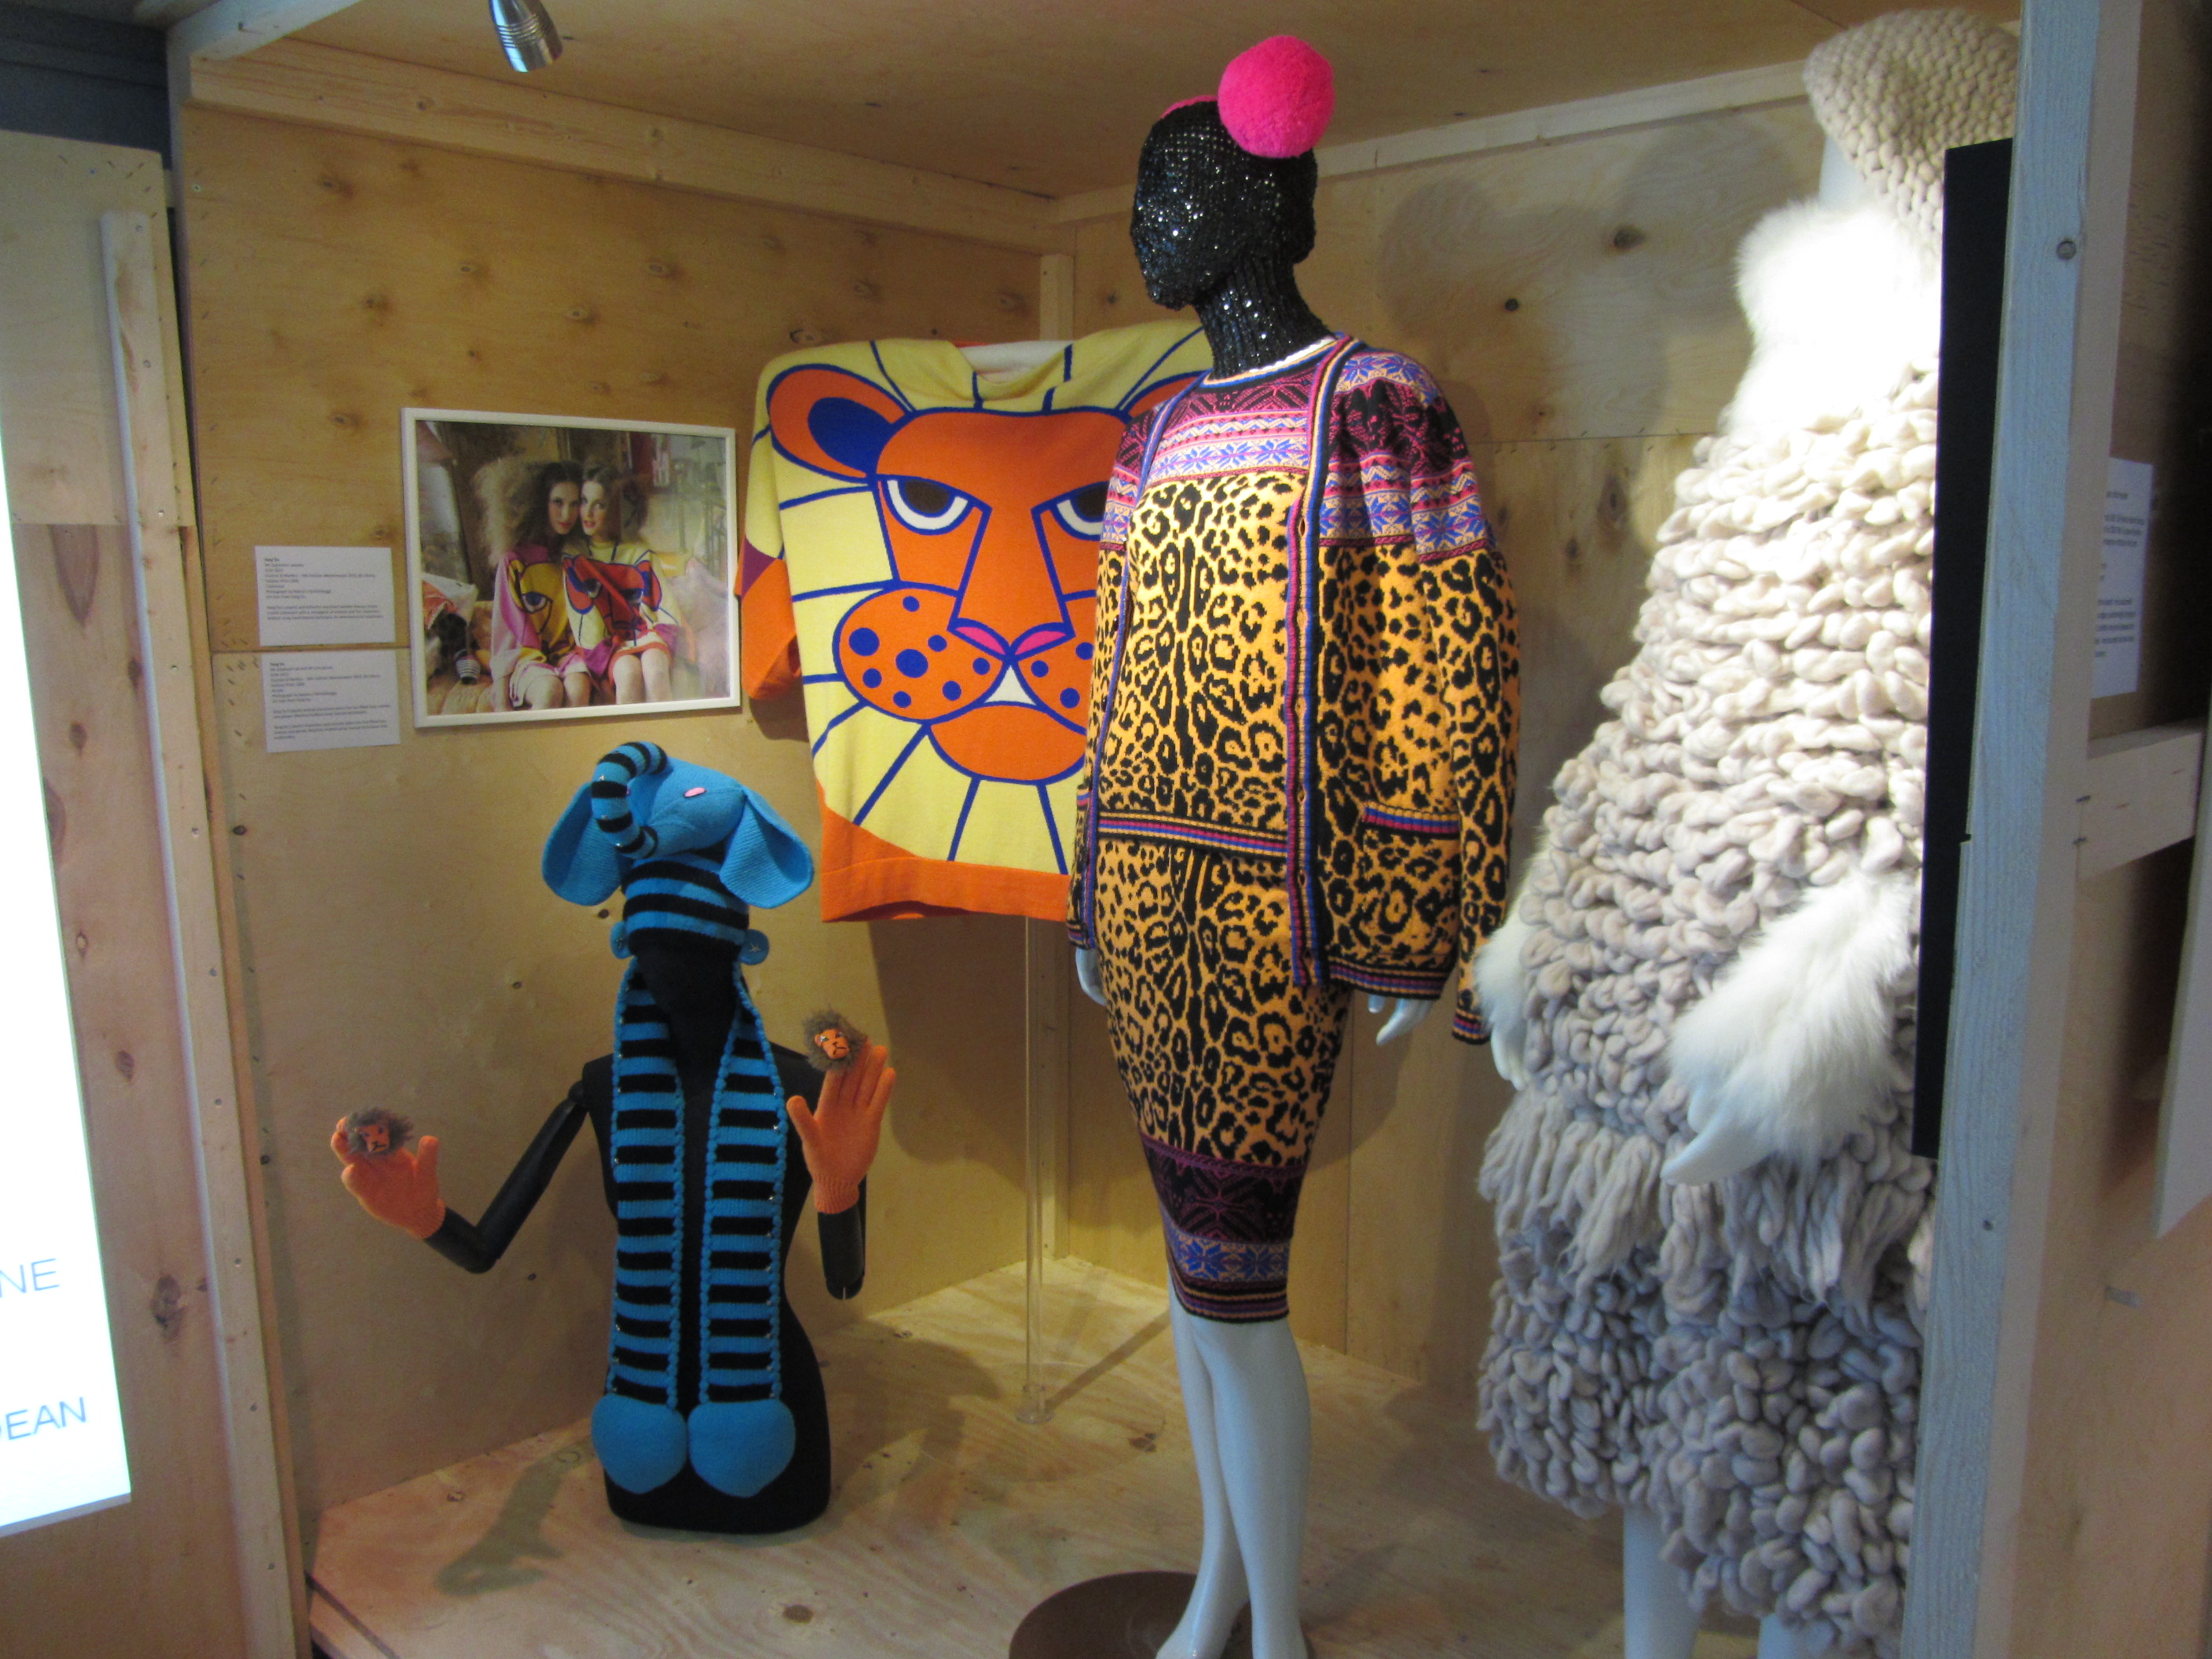 Fashion & Textiles Museum Knitwear